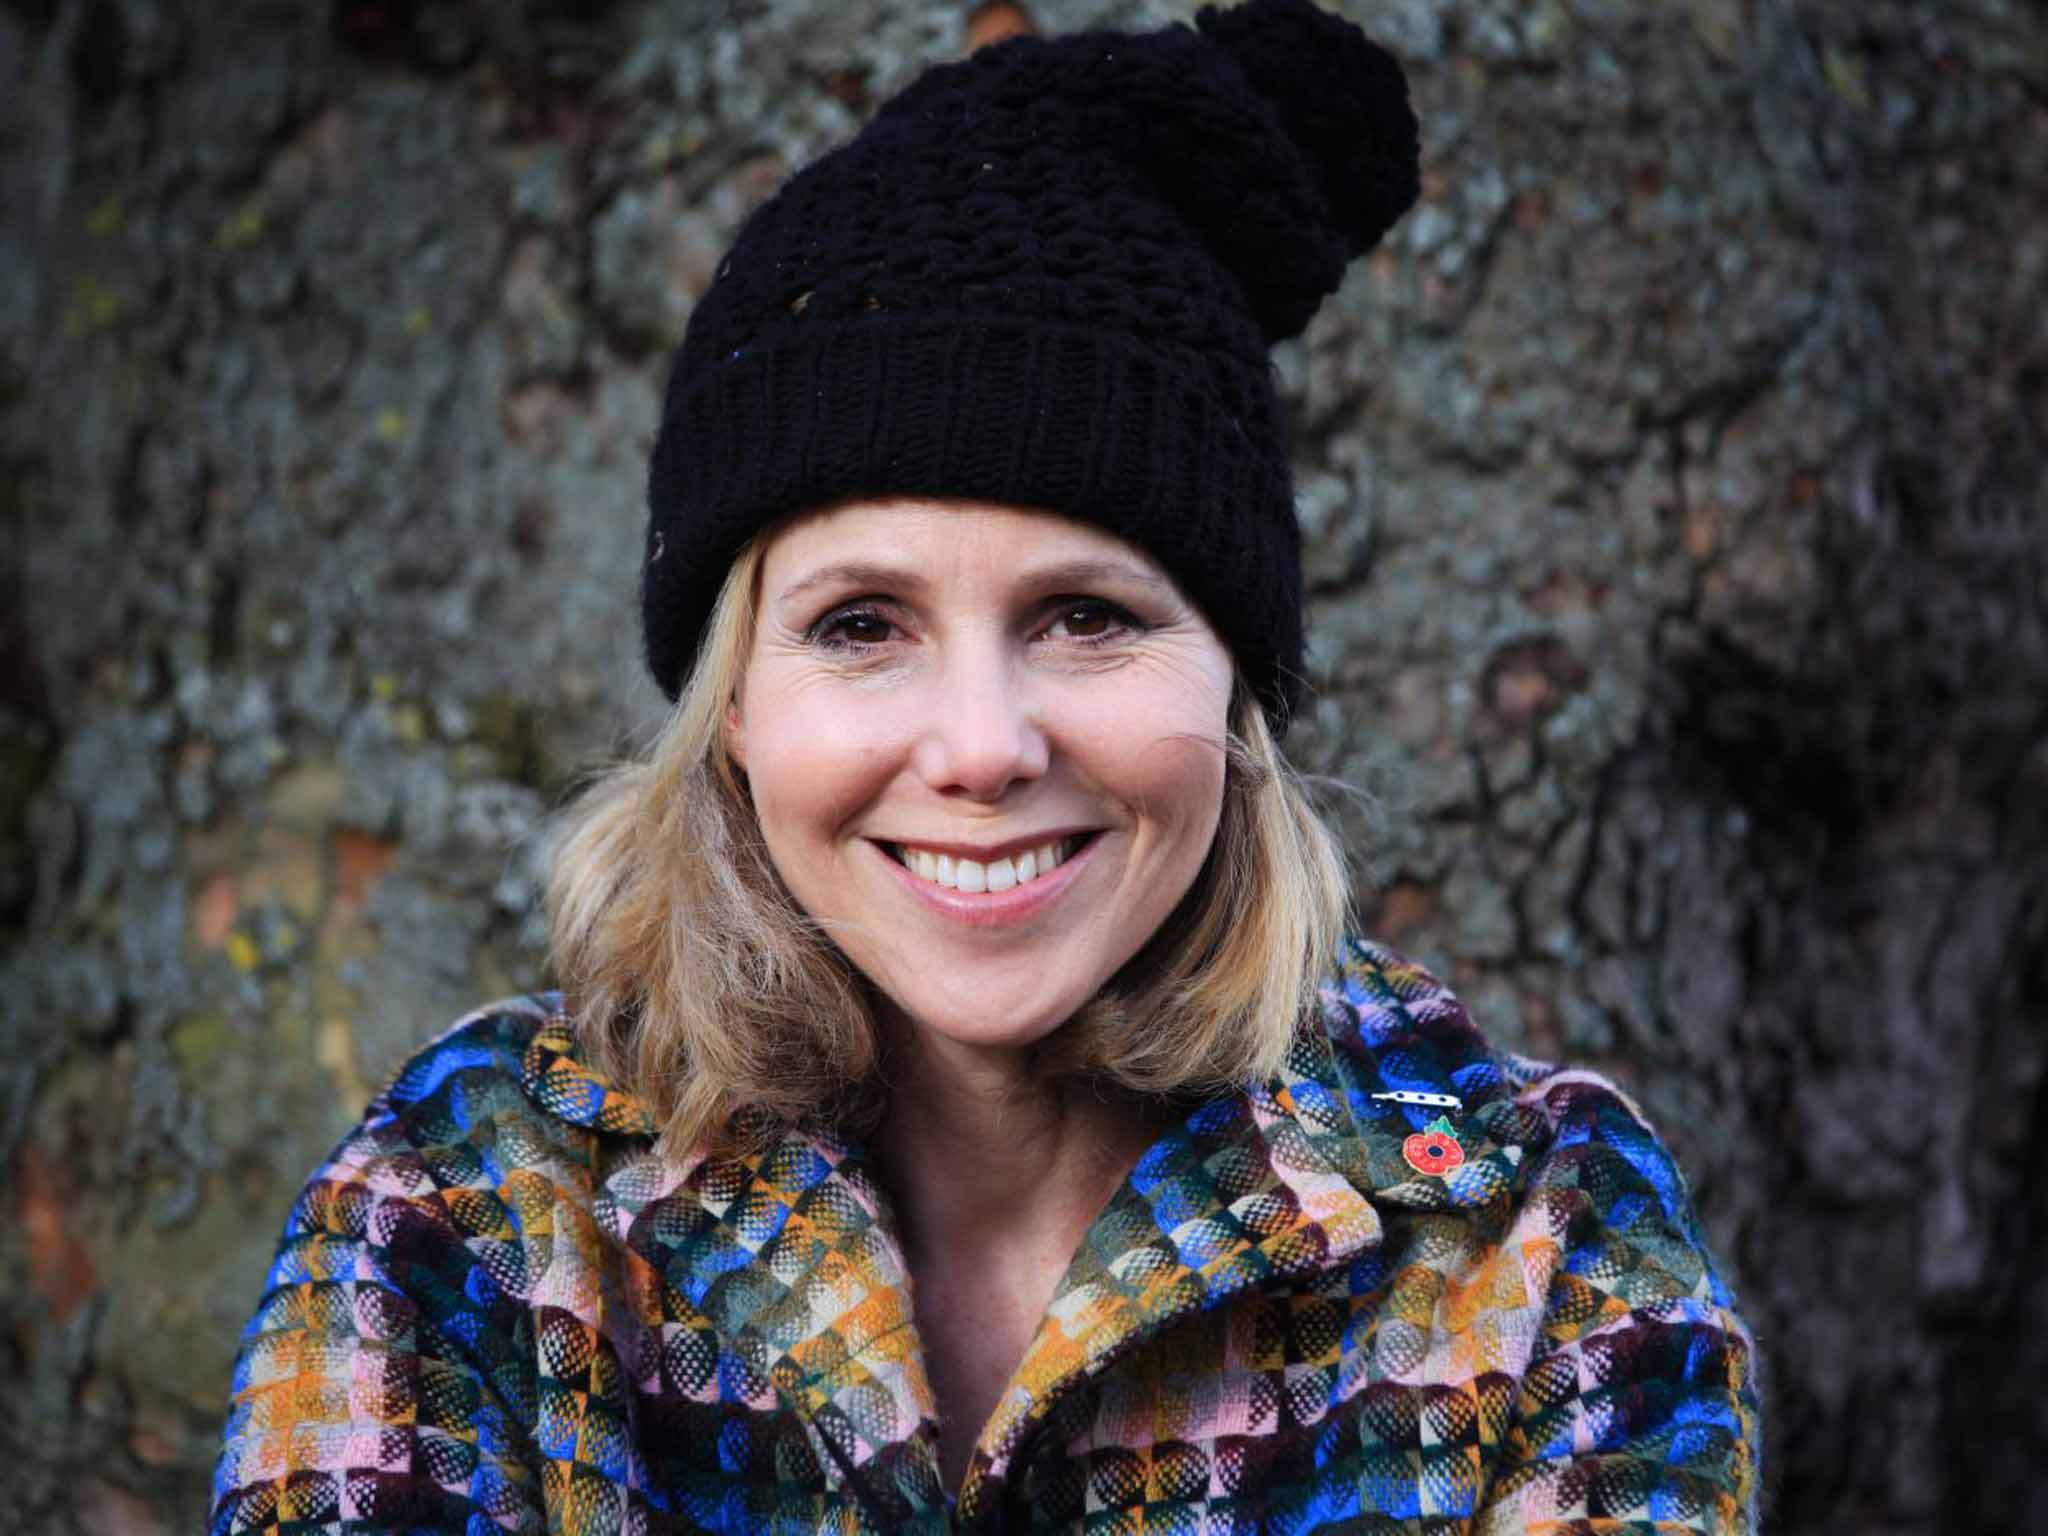 sally phillips imdb